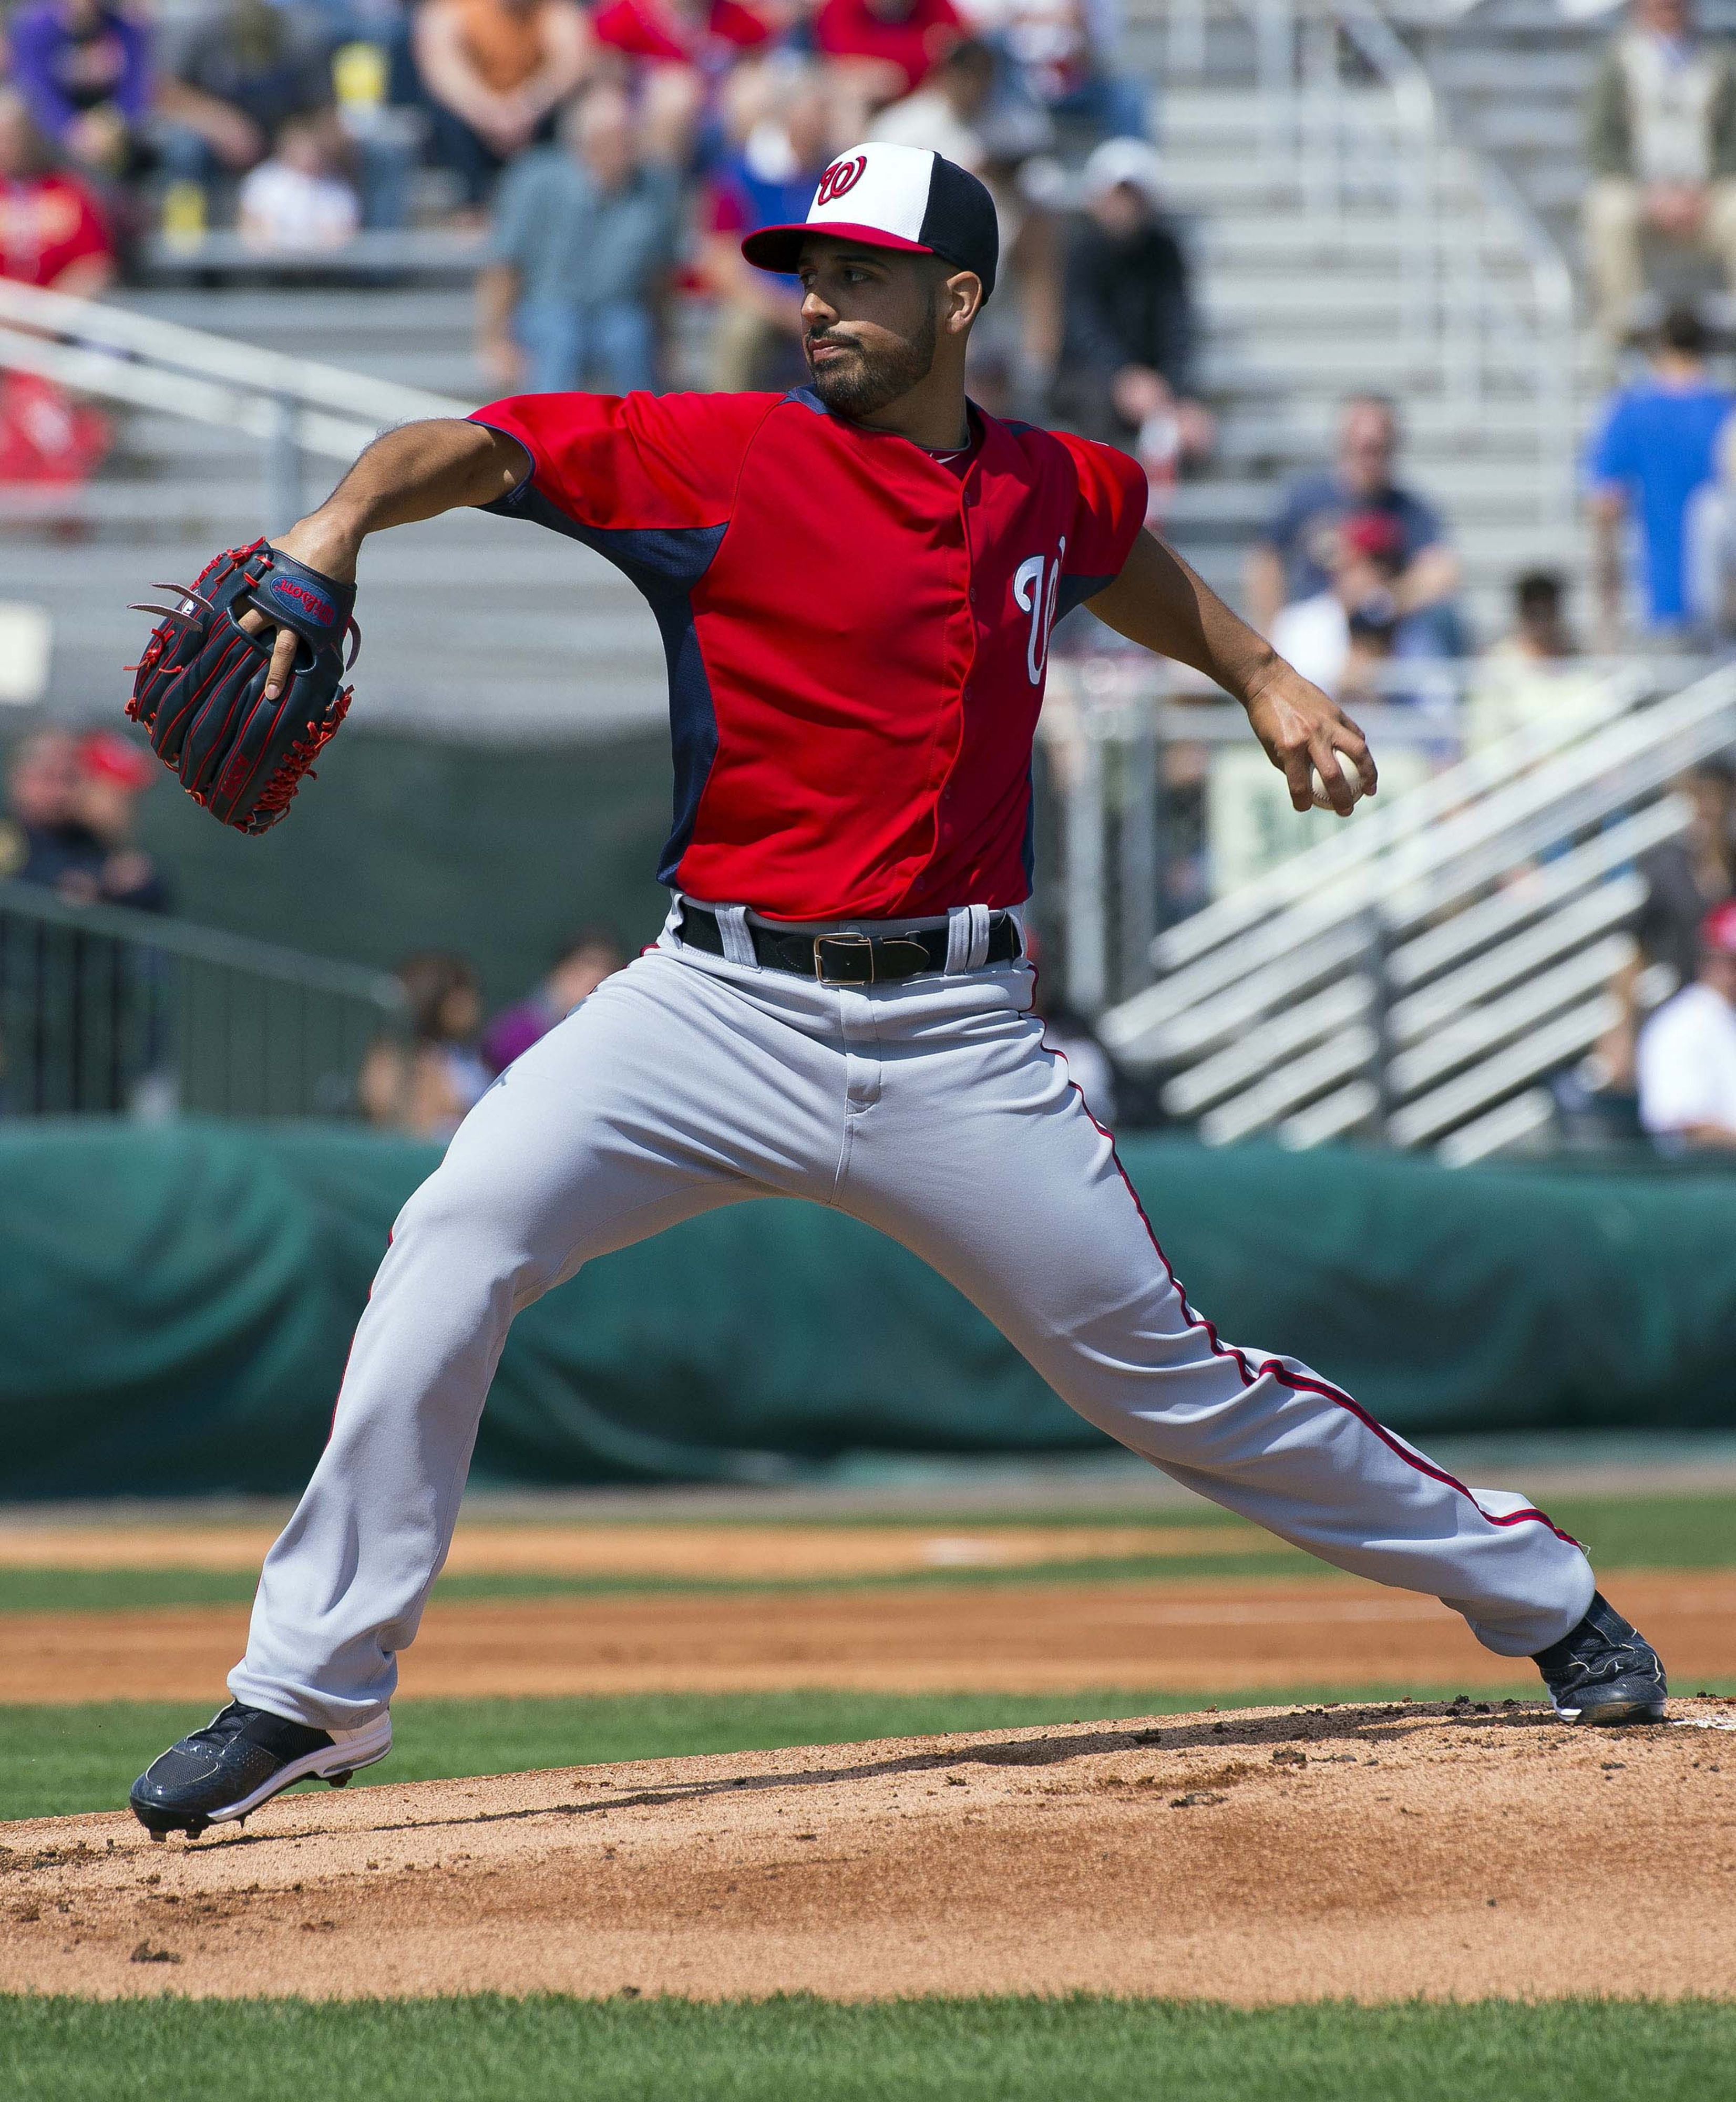 Nats' lefty Gio Gonzalez talked to reporters Monday about starting in the WBC